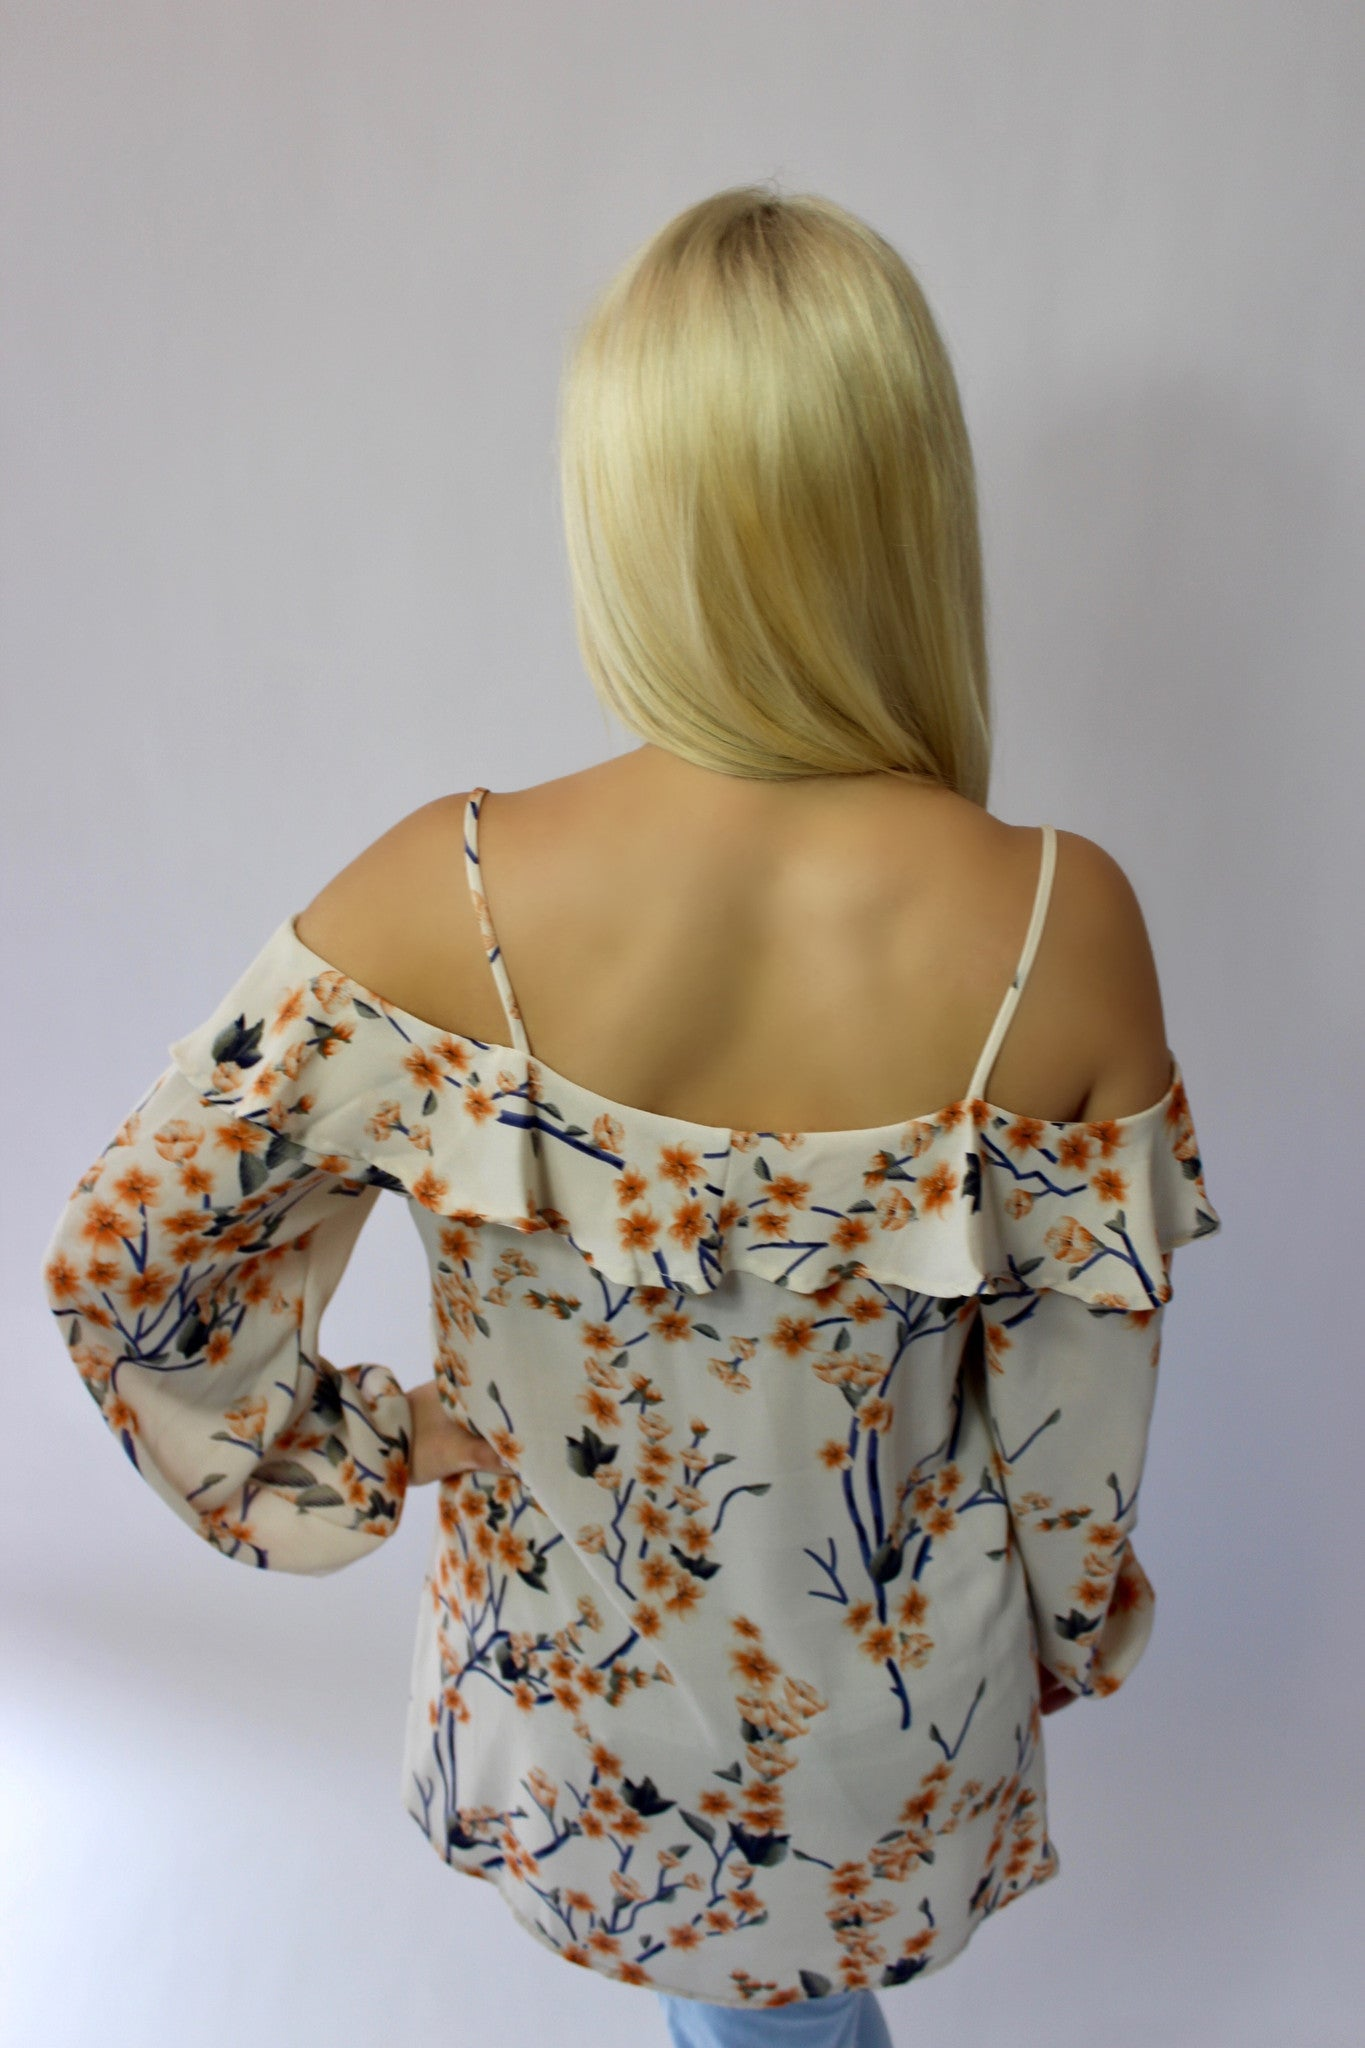 Birdie Off the Shoulder Tunic Top - Mod Owl